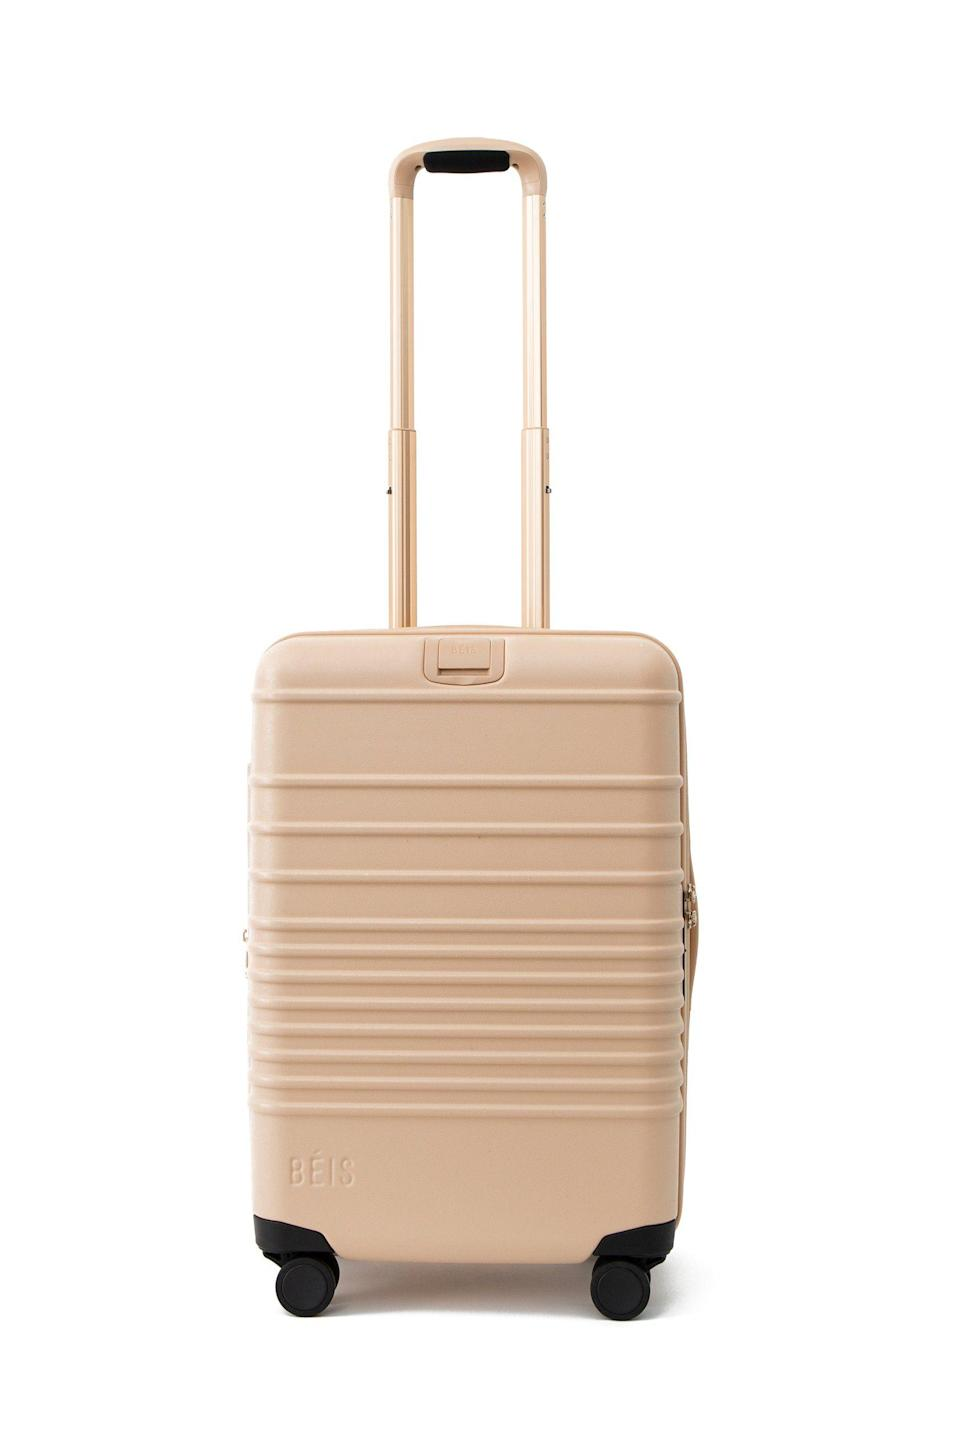 """<p>beistravel.com</p><p><strong>$198.00</strong></p><p><a href=""""https://beistravel.com/products/the-carry-on-roller-in-beige"""" rel=""""nofollow noopener"""" target=""""_blank"""" data-ylk=""""slk:BUY IT HERE"""" class=""""link rapid-noclick-resp"""">BUY IT HERE</a></p><p>When they <em>do </em>get to come visit you—or when you finally take that trip you've been planning—don't let the lugging derail the adventure. Beis's rollers are simple, chic, and expertly roomy. </p>"""